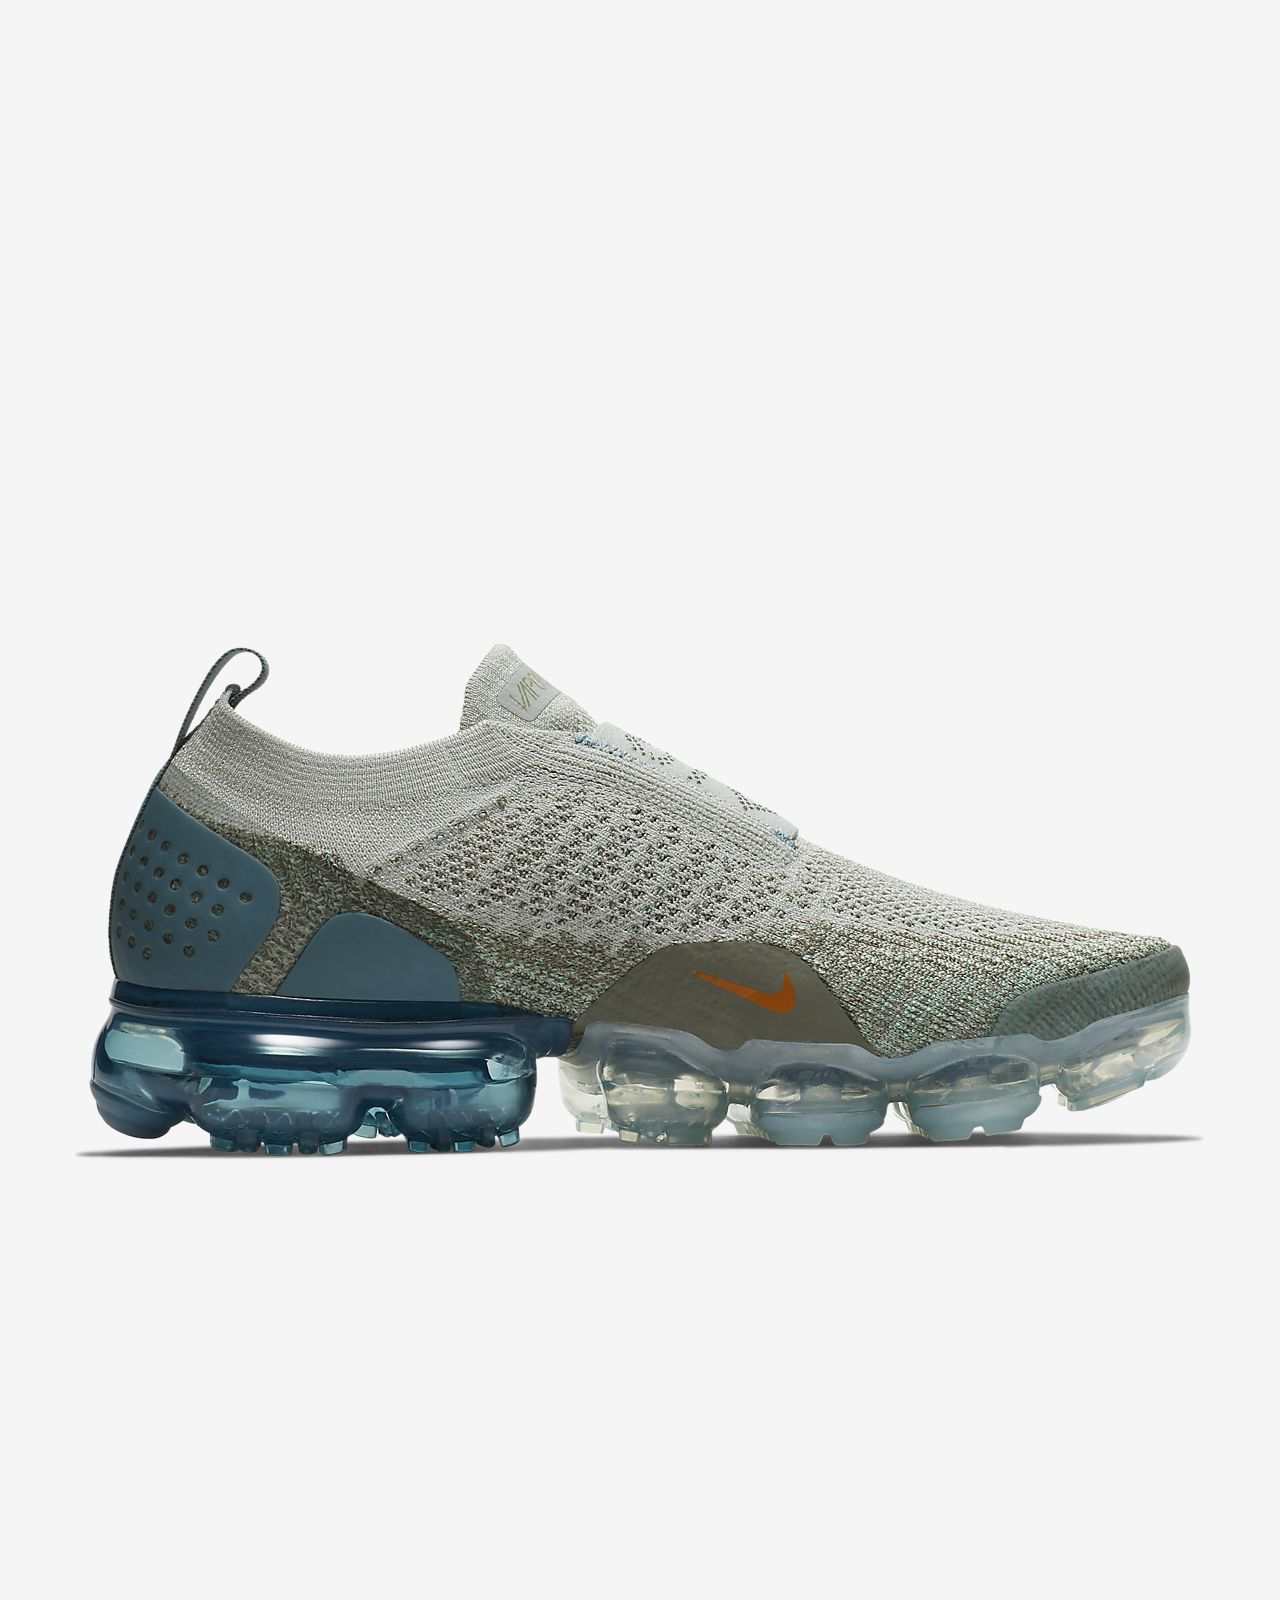 separation shoes 37393 3bd0c Low Resolution Nike Air VaporMax Flyknit Moc 2 Women s Shoe Nike Air  VaporMax Flyknit Moc 2 Women s Shoe